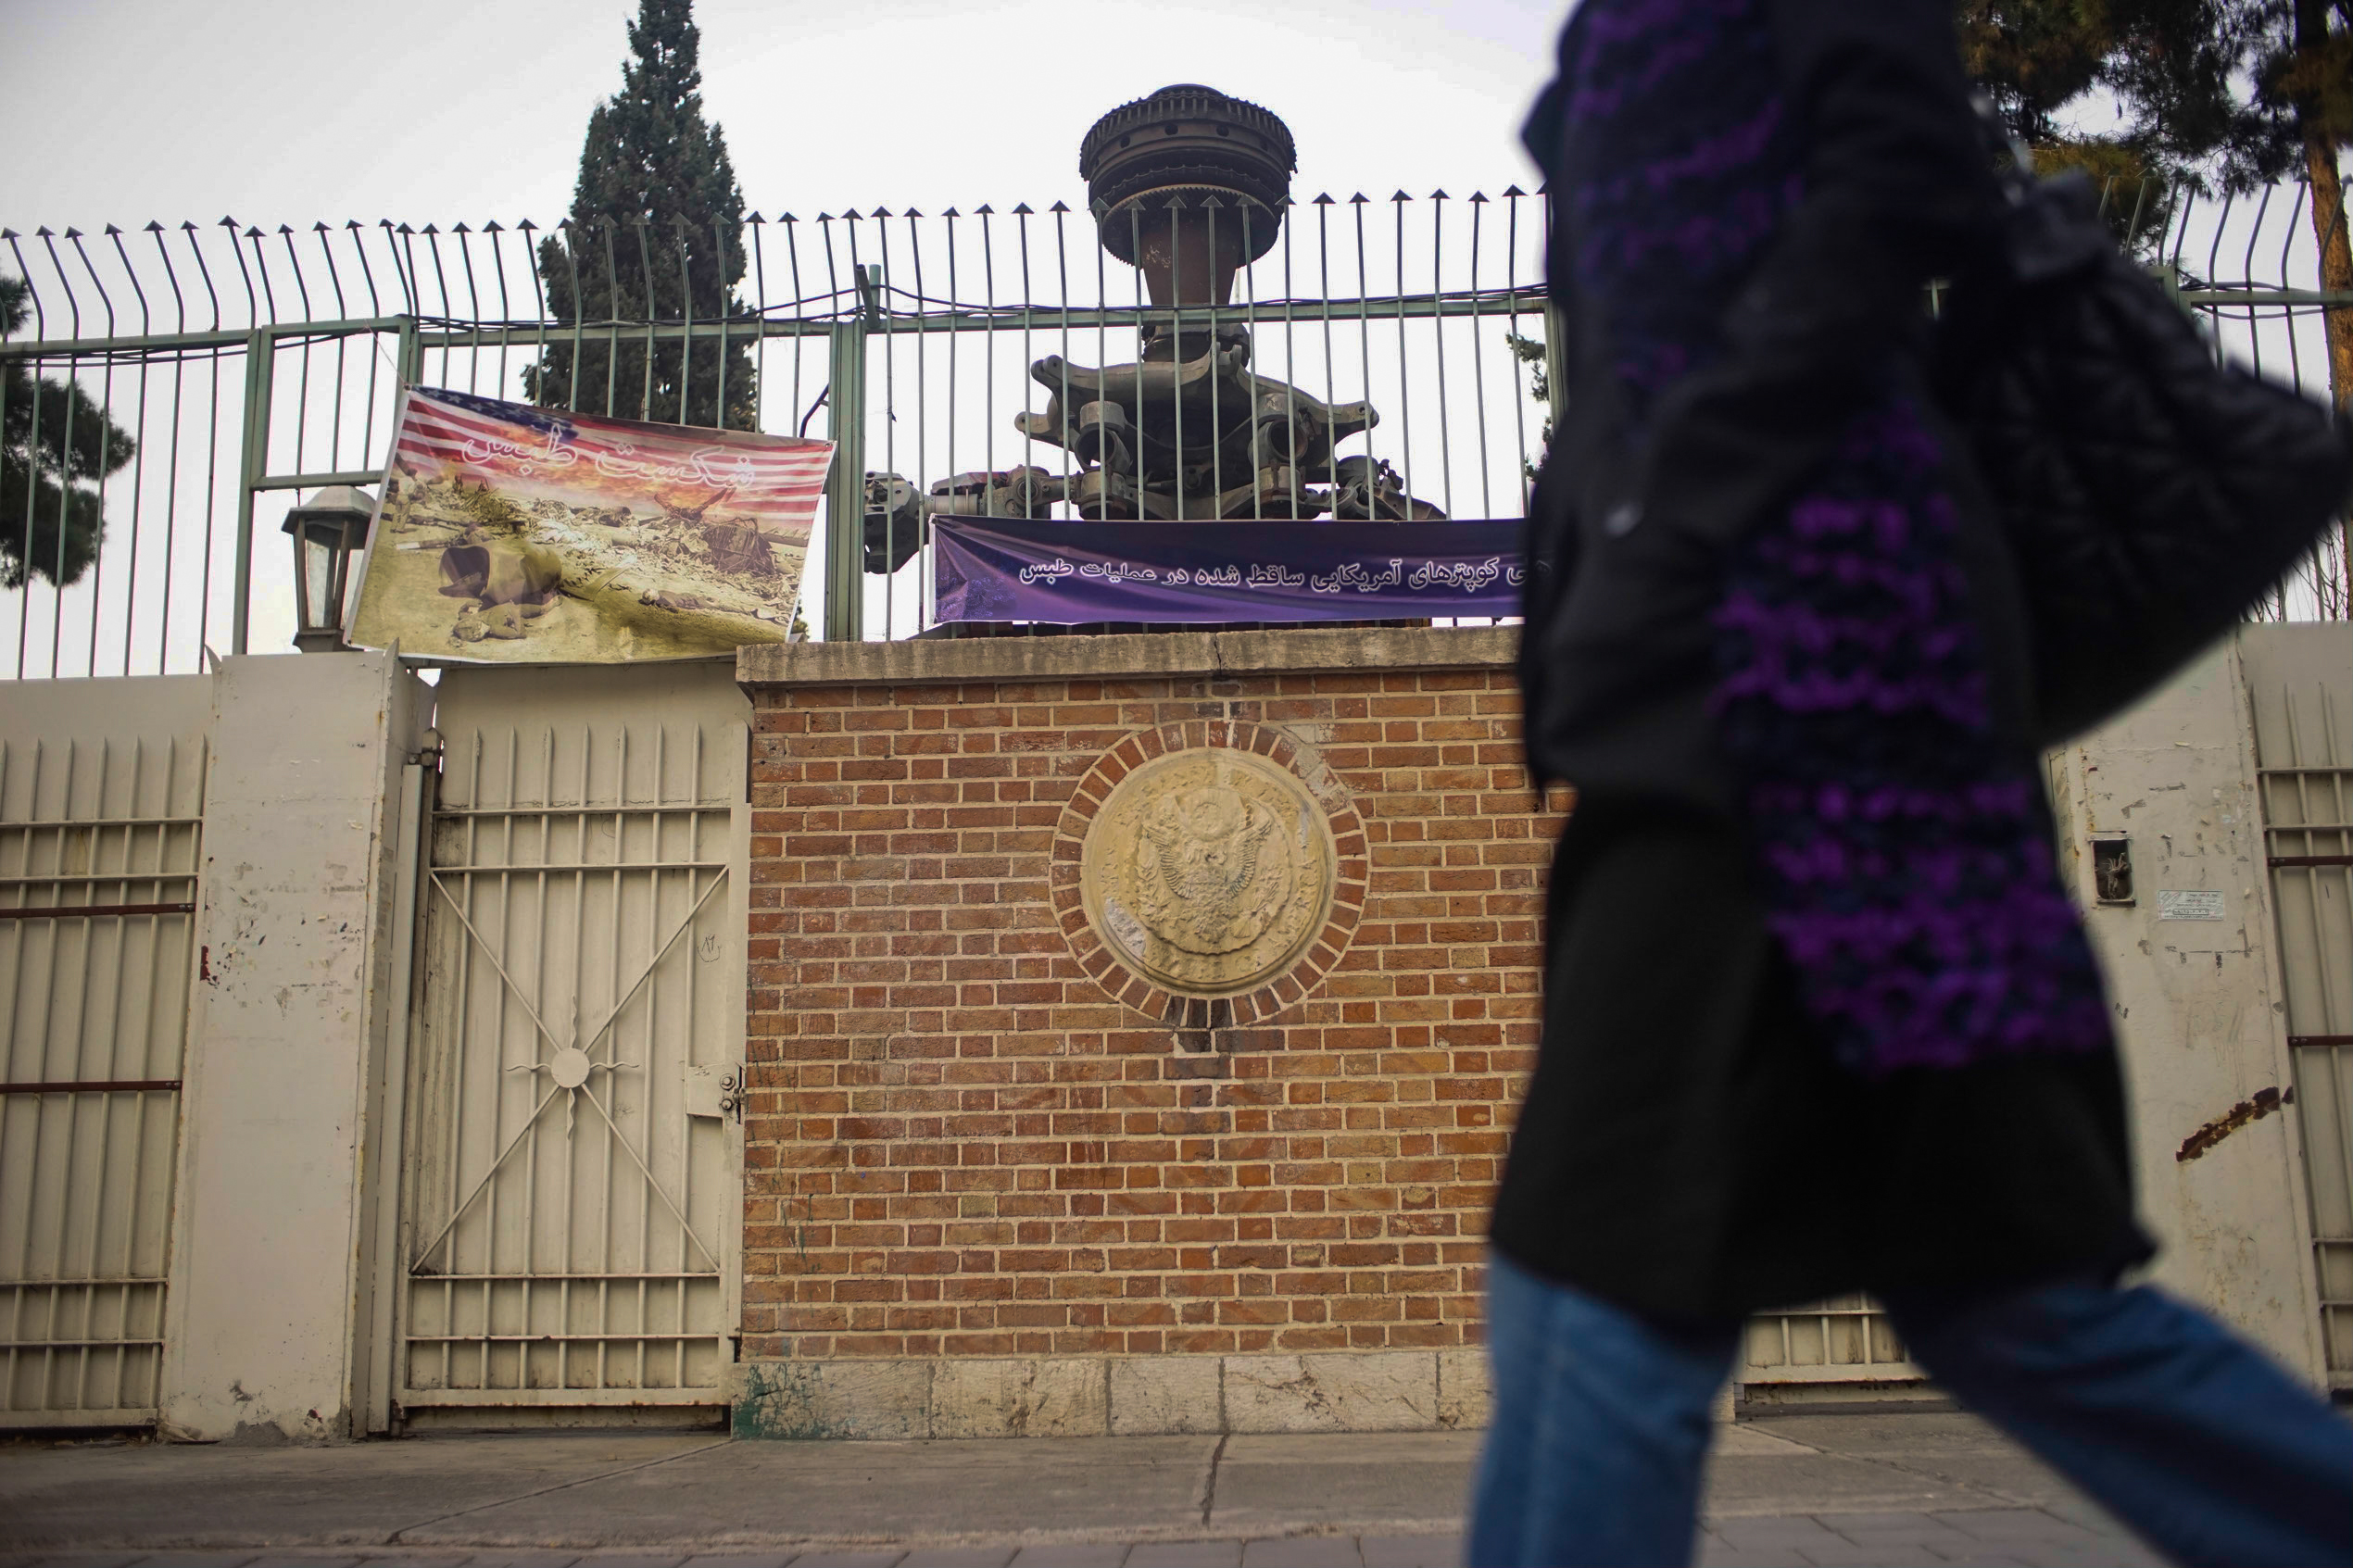 Entry gate of the former U.S. embassy in Tehran. The banner hanging upper left is allegedly a photo of the wreckage of the failed American rescue mission from 1980, where eight U.S. military members died when their aircraft were damaged in a sand and dust storm and crashed.  The Iranians claim the machine parts up behind the gate are from one of those U.S. aircraft.